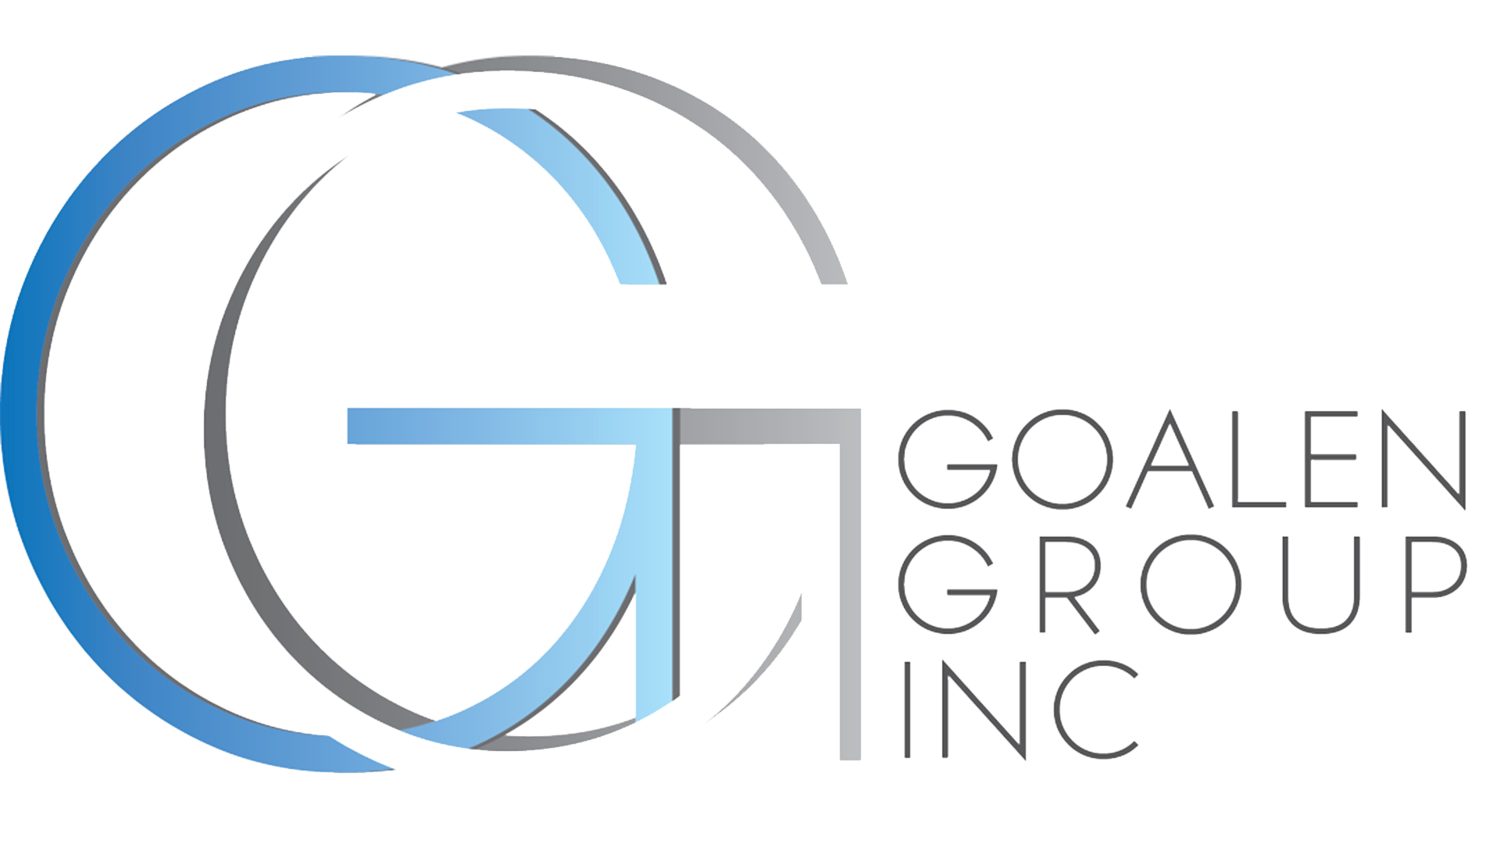 Goalen Group INC.